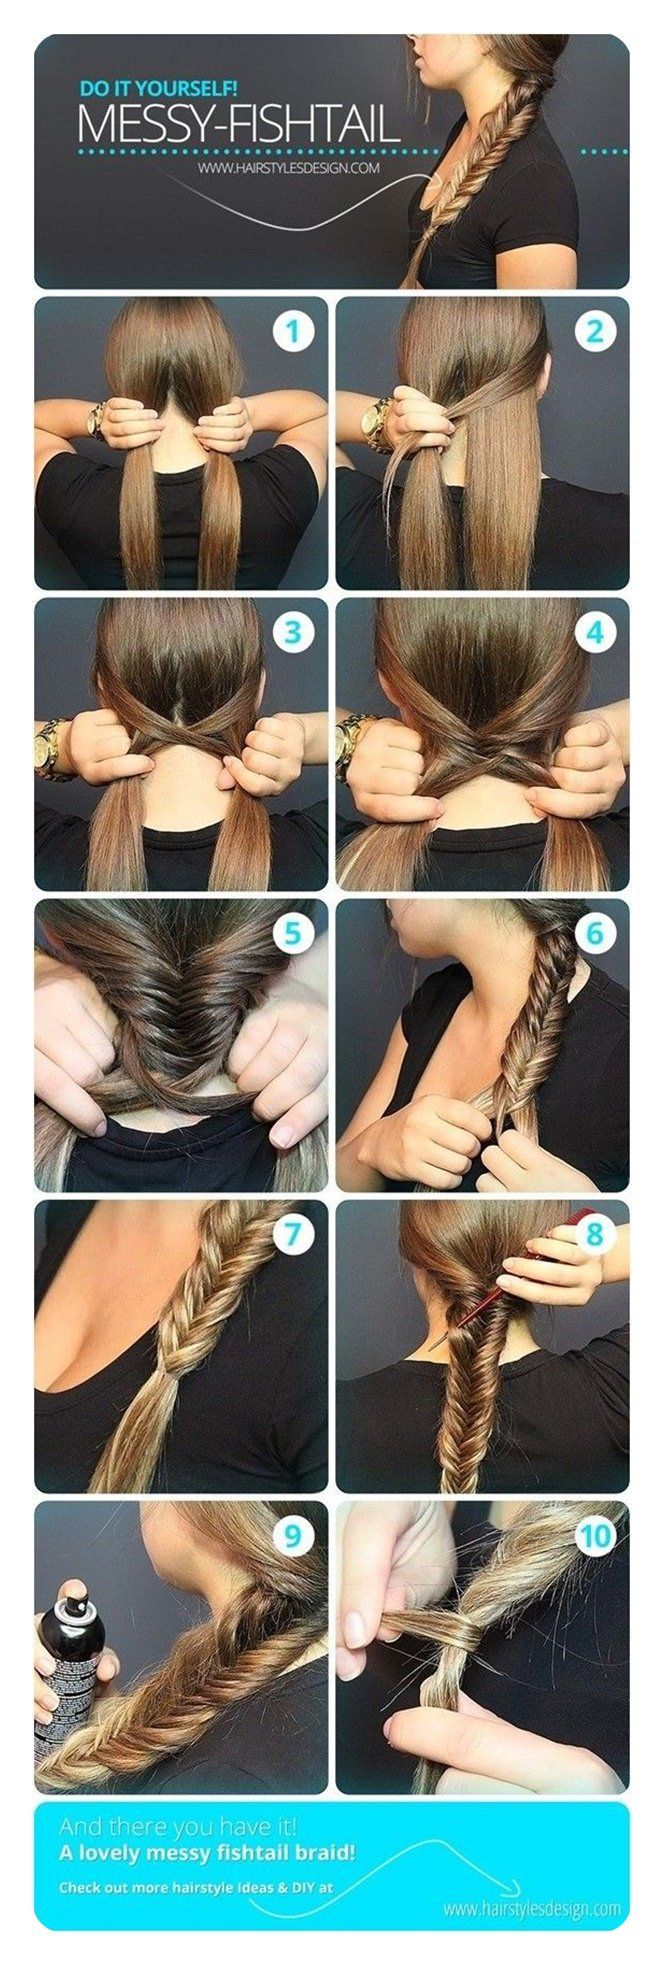 11 Unique Fishtail Braid Hairstyles To Inspire You   - braids - #braid #Braids #Fishtail #Hairstyles #Inspire #Unique # fishtail Braids diy